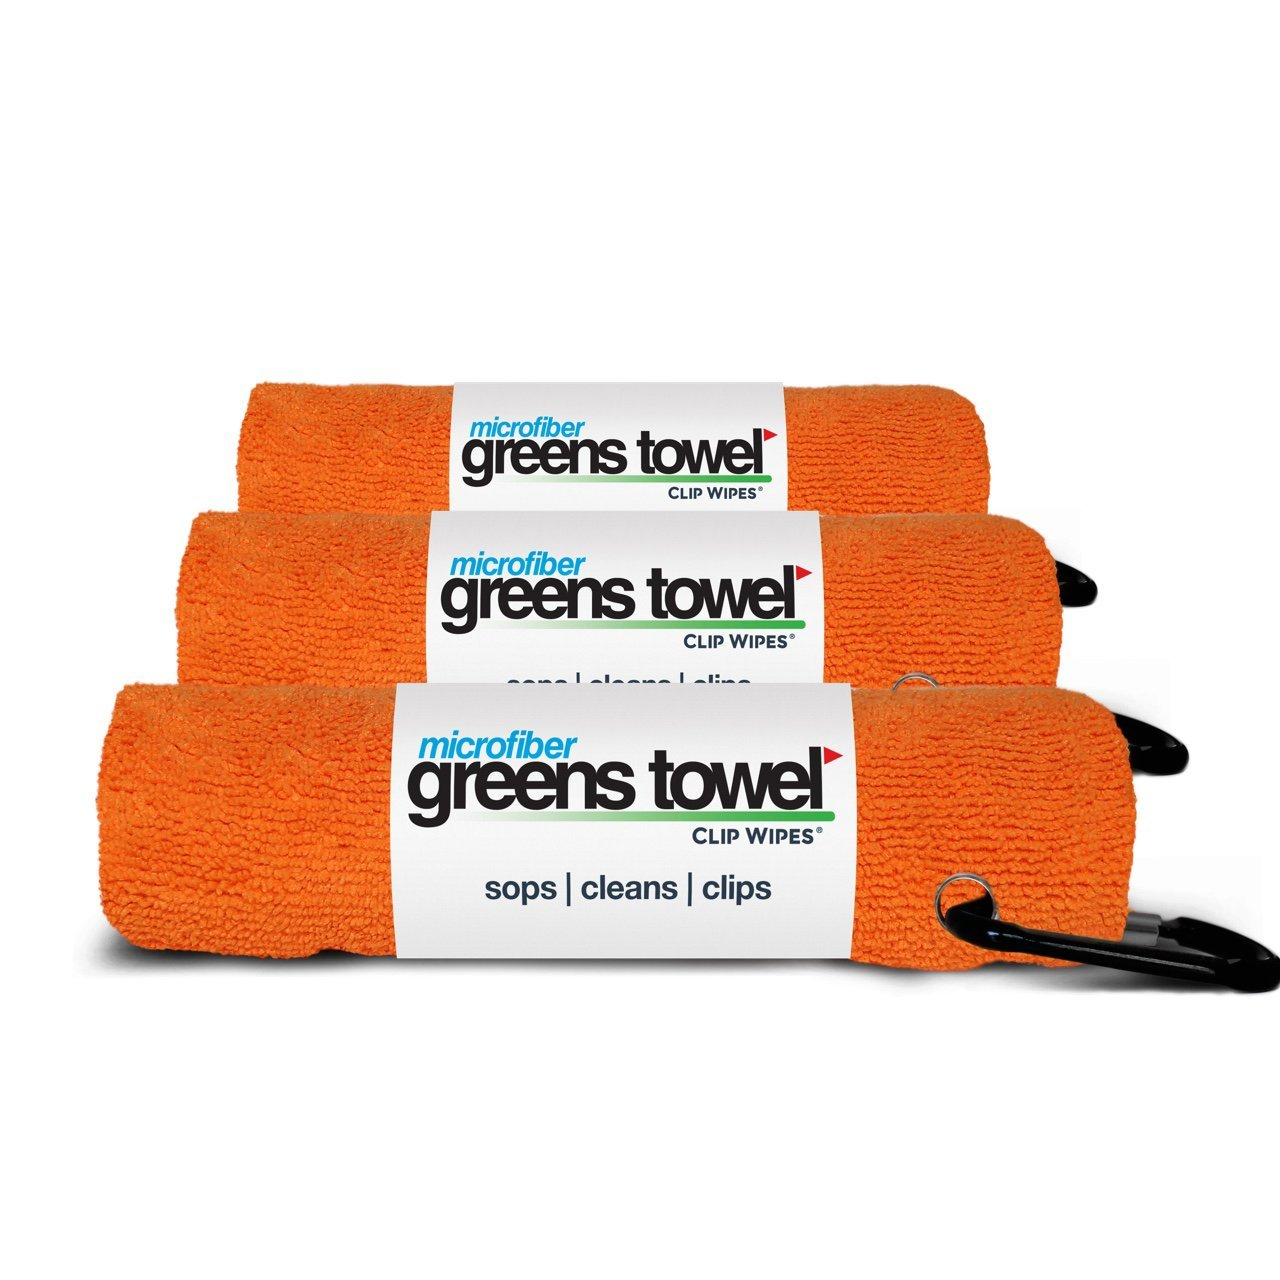 Microfiber Greens Towel Jet Black 3 Pack